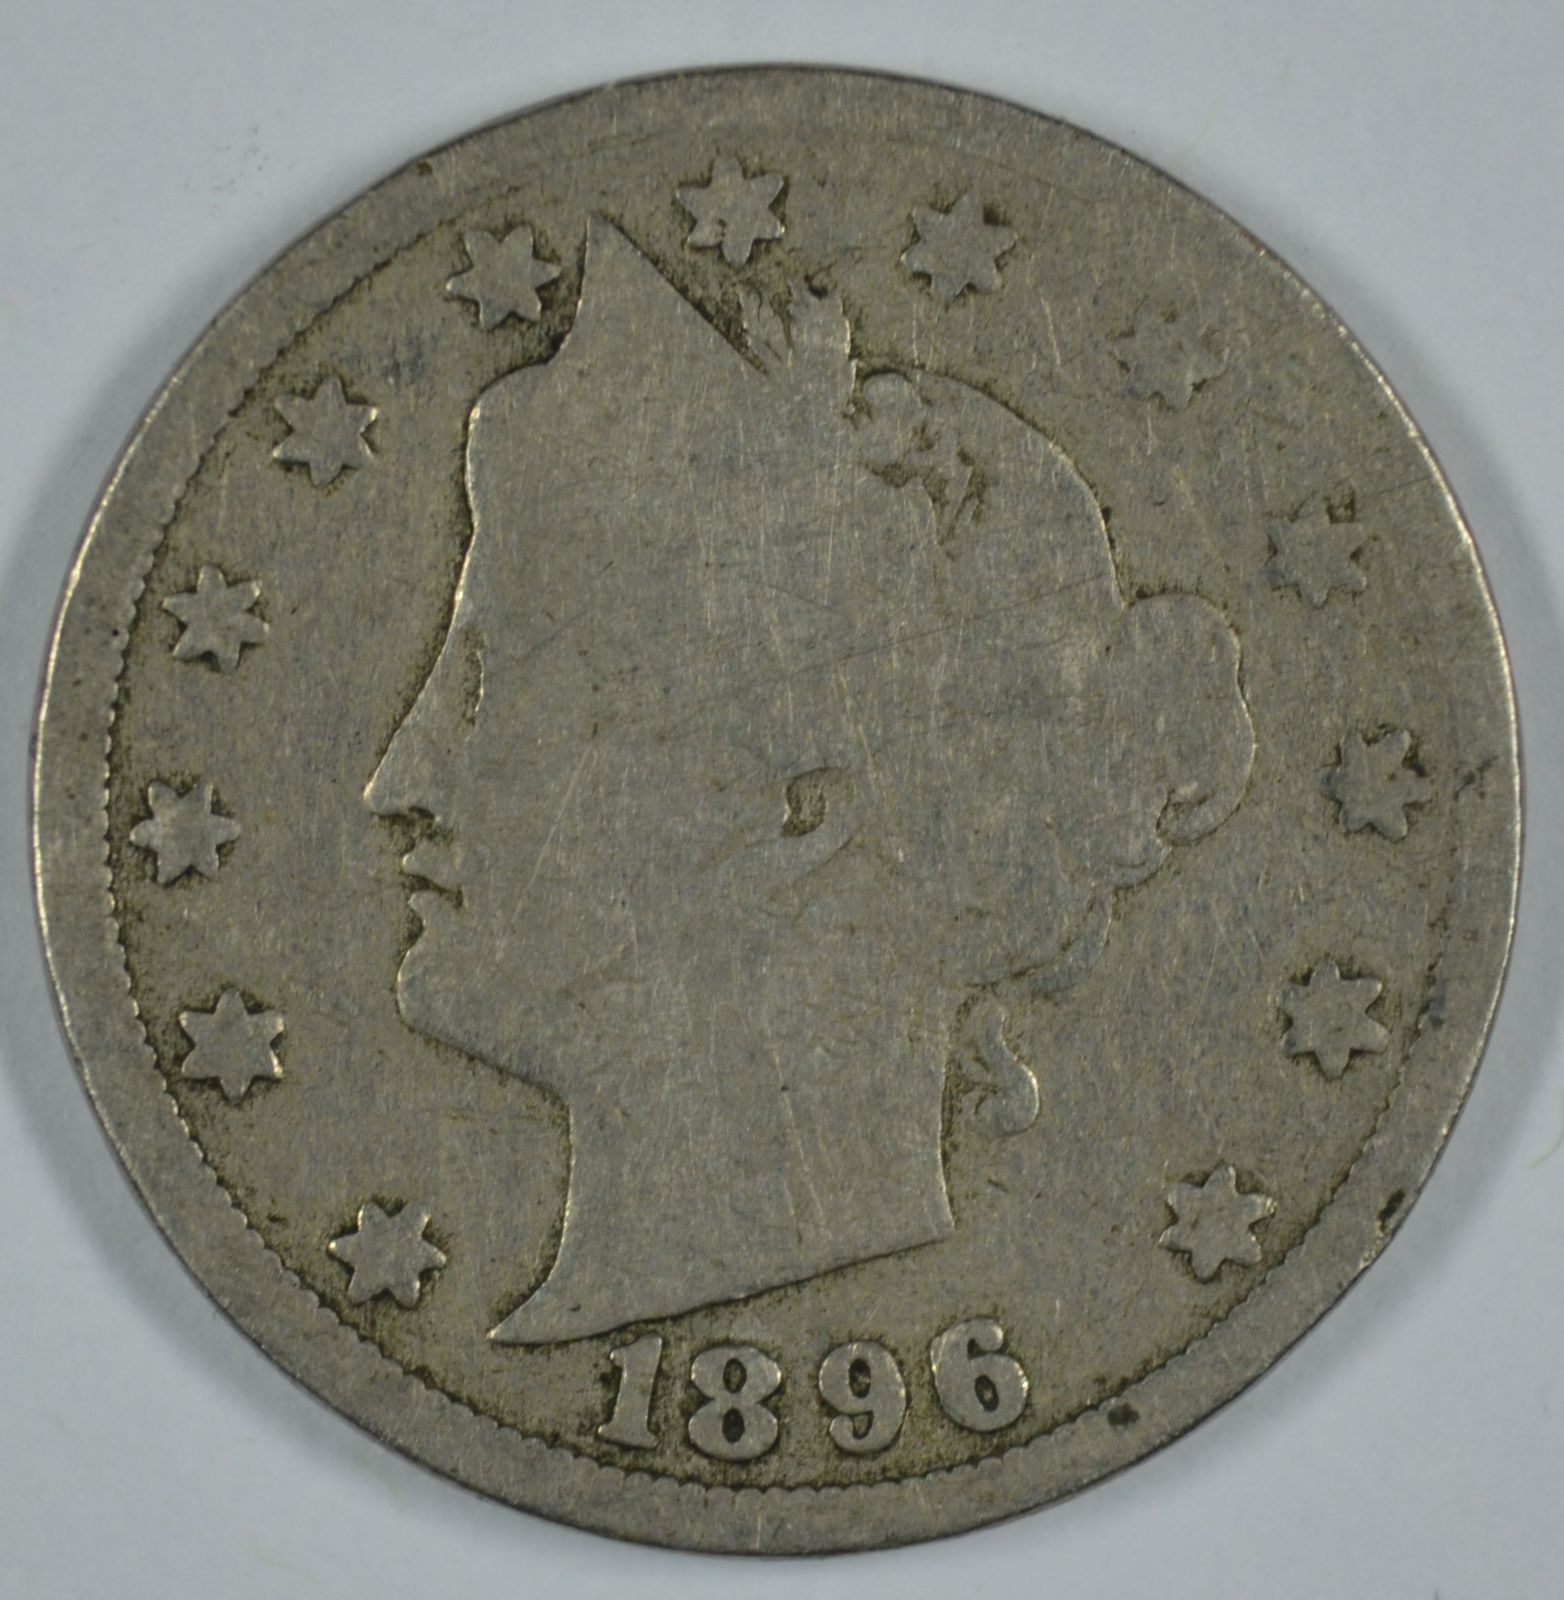 Primary image for 1896 Liberty Head circulated nickel